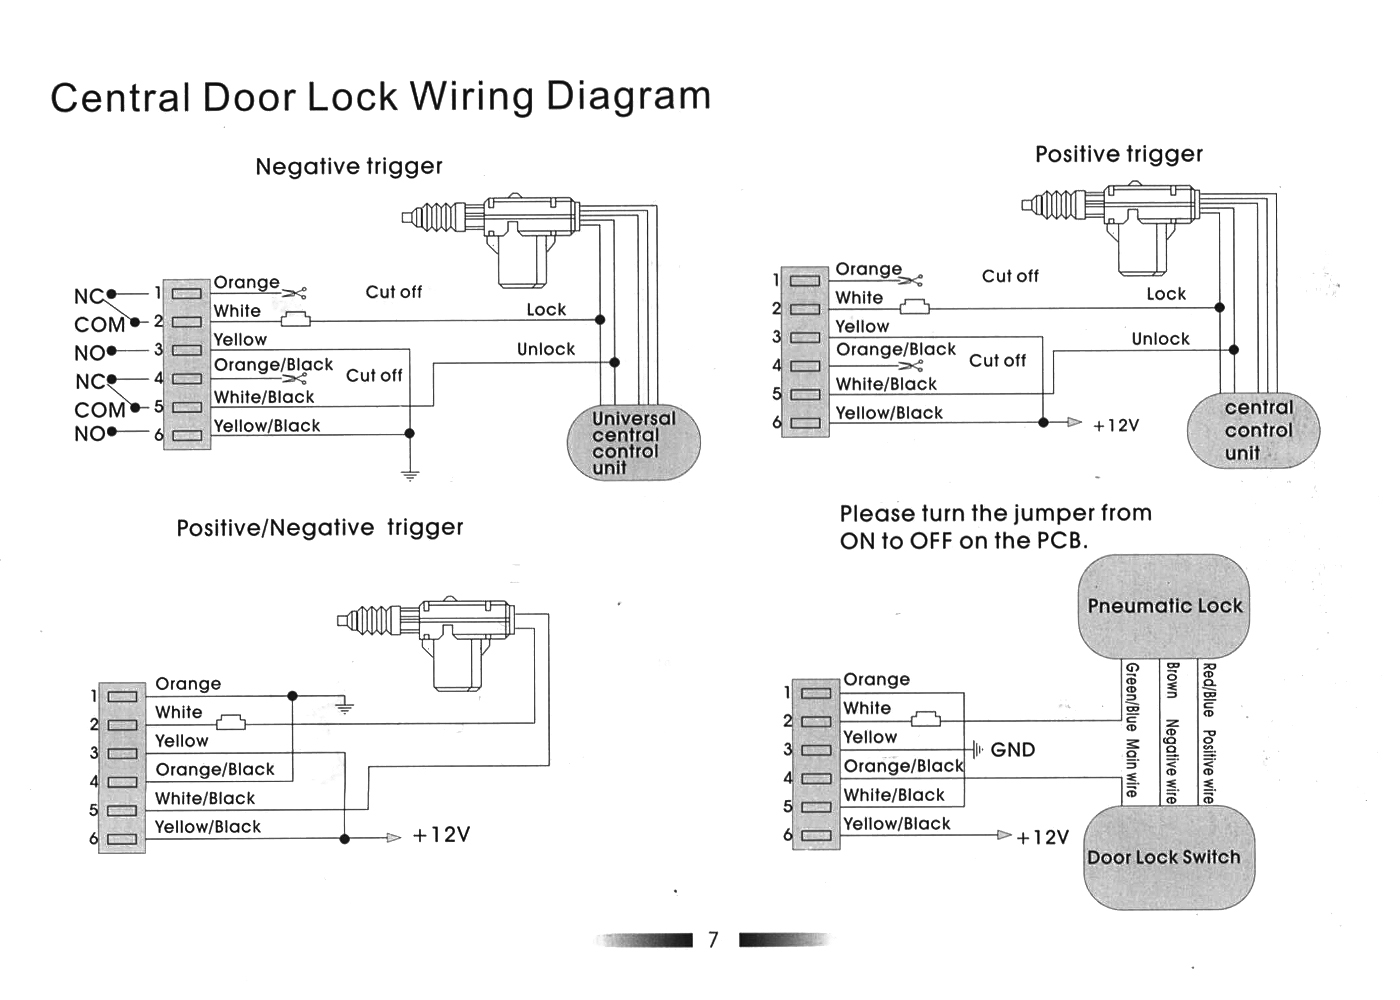 Mazda Lantis 1 8 Wiring Diagram Strategy Design Plan B2200 All Image About And Schematic Club323f U2022 View Topic Alarm Installation Rh Com Miata Engine Tribute Diagrams